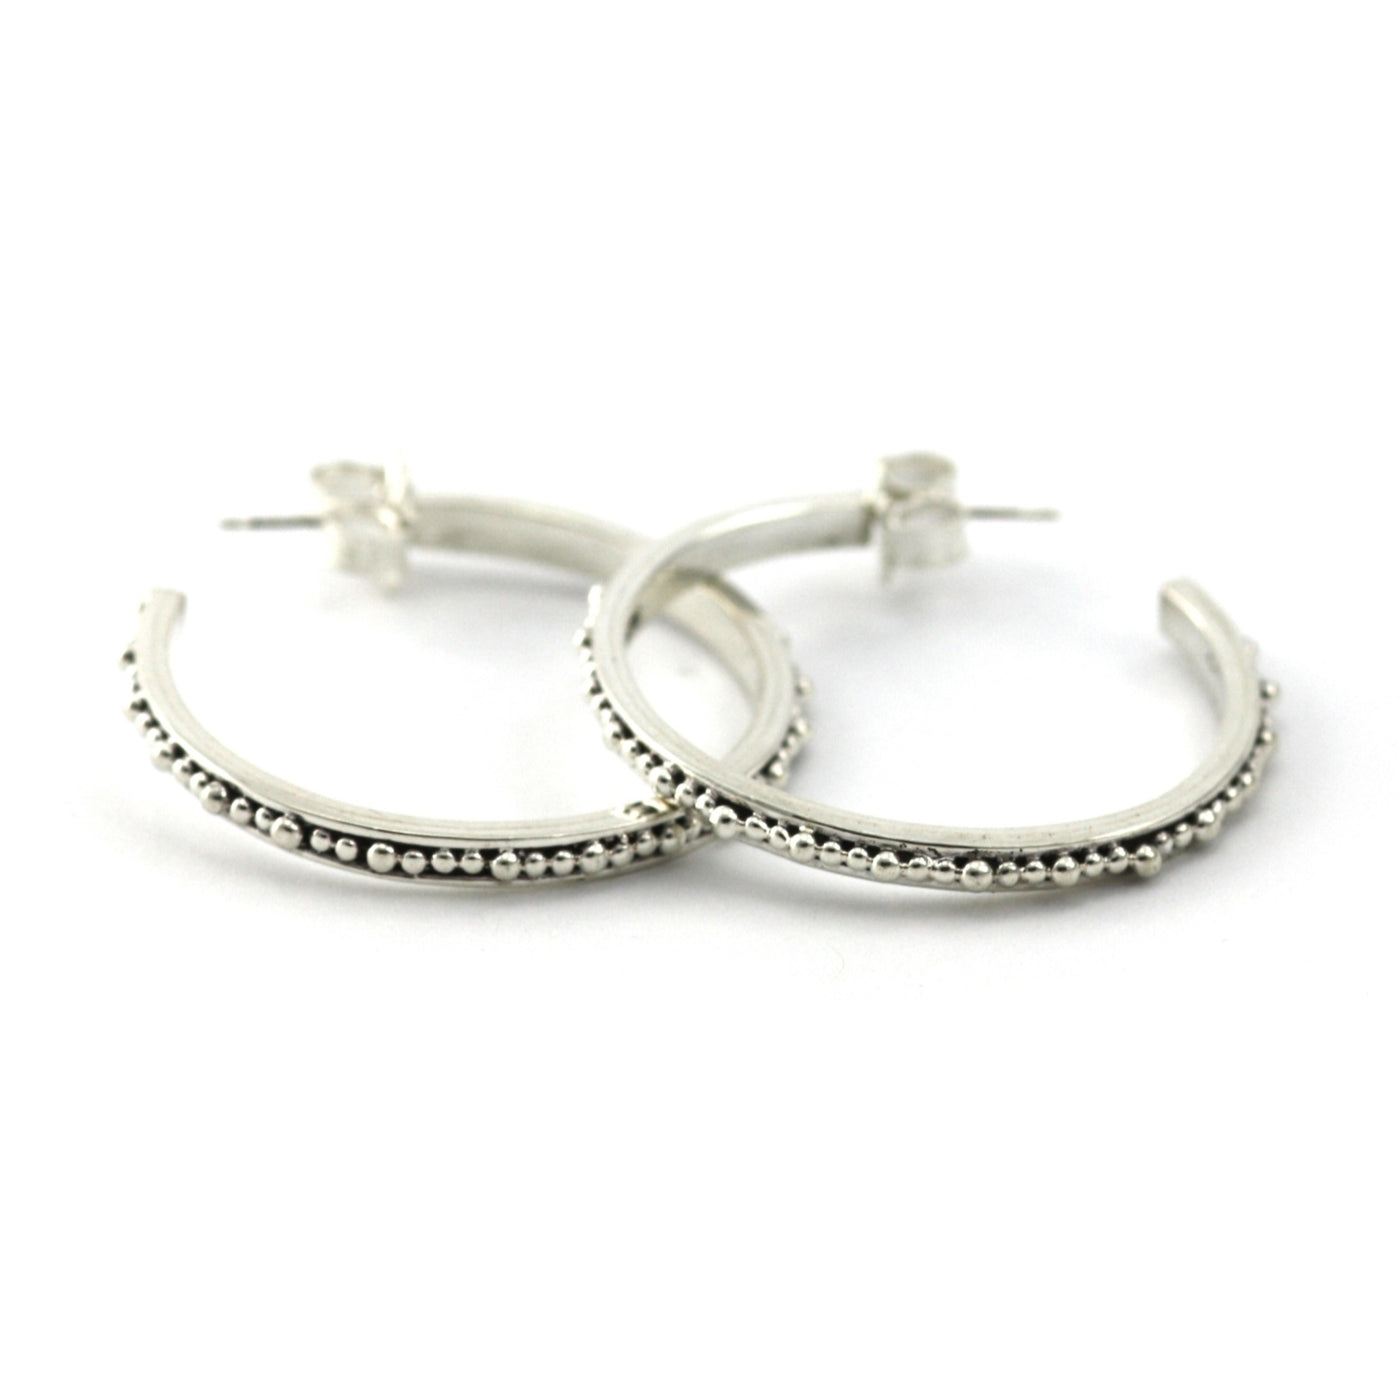 ID E300M THIN BEADED HOOP EARRINGS